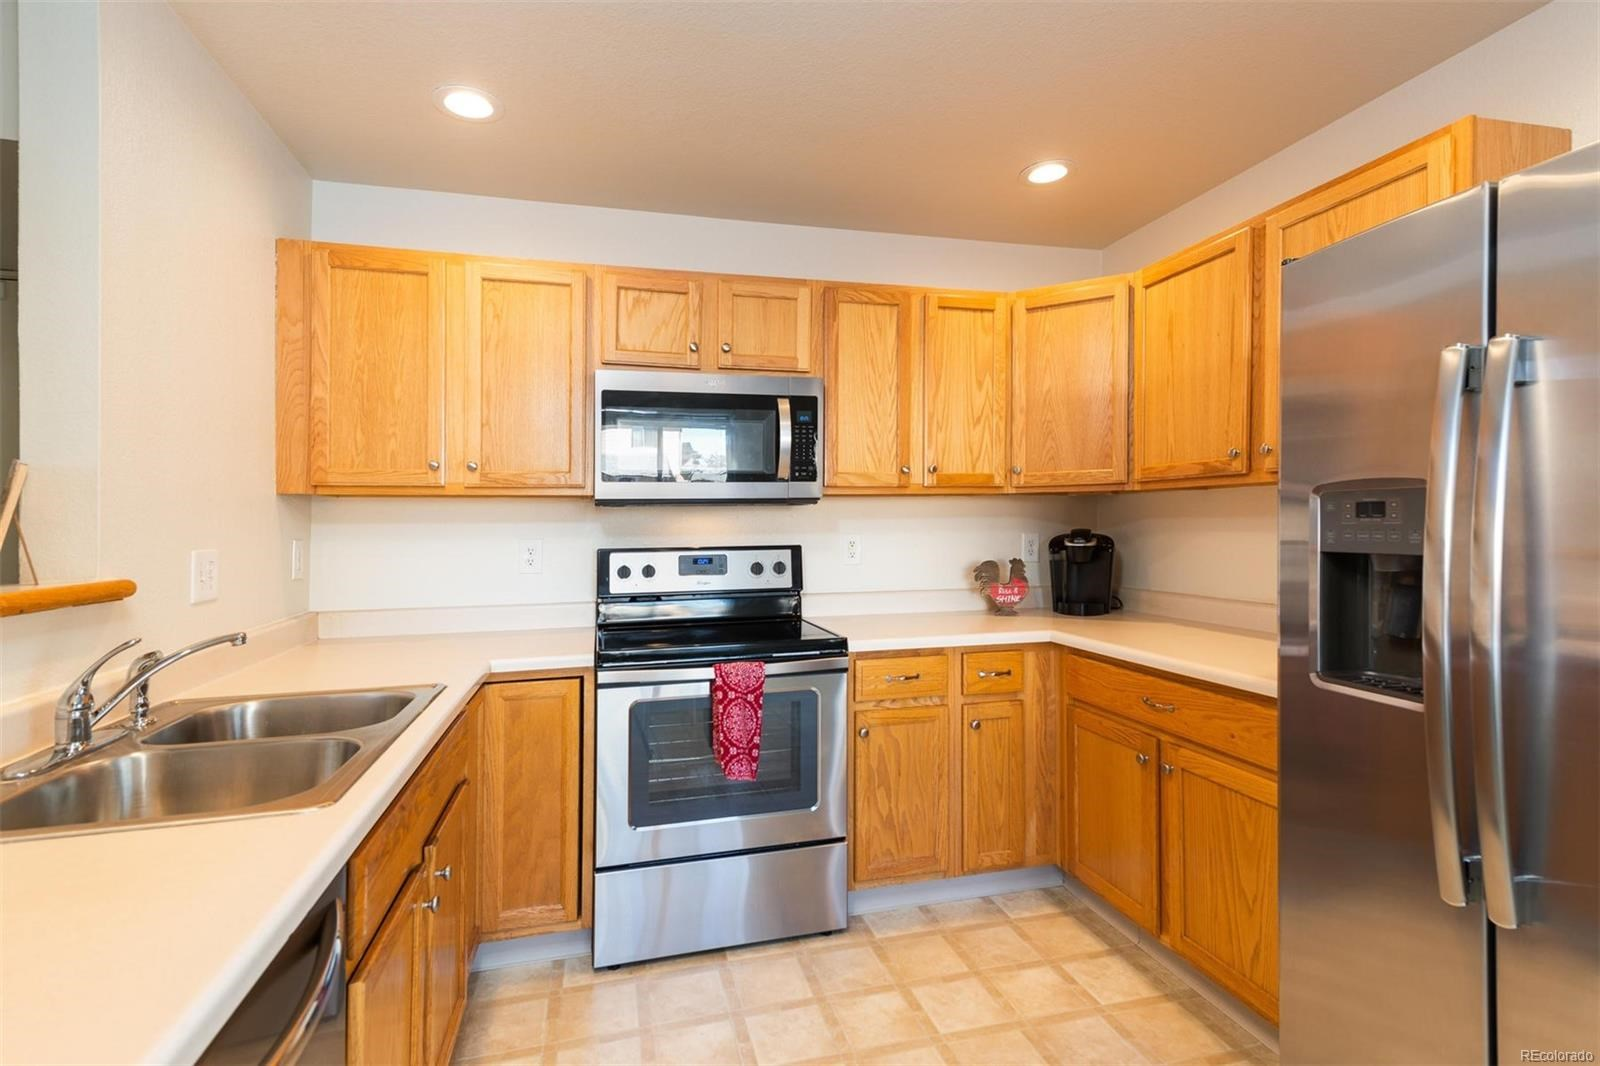 MLS# 6800957 - 6 - 8891 Lowell Way, Westminster, CO 80031